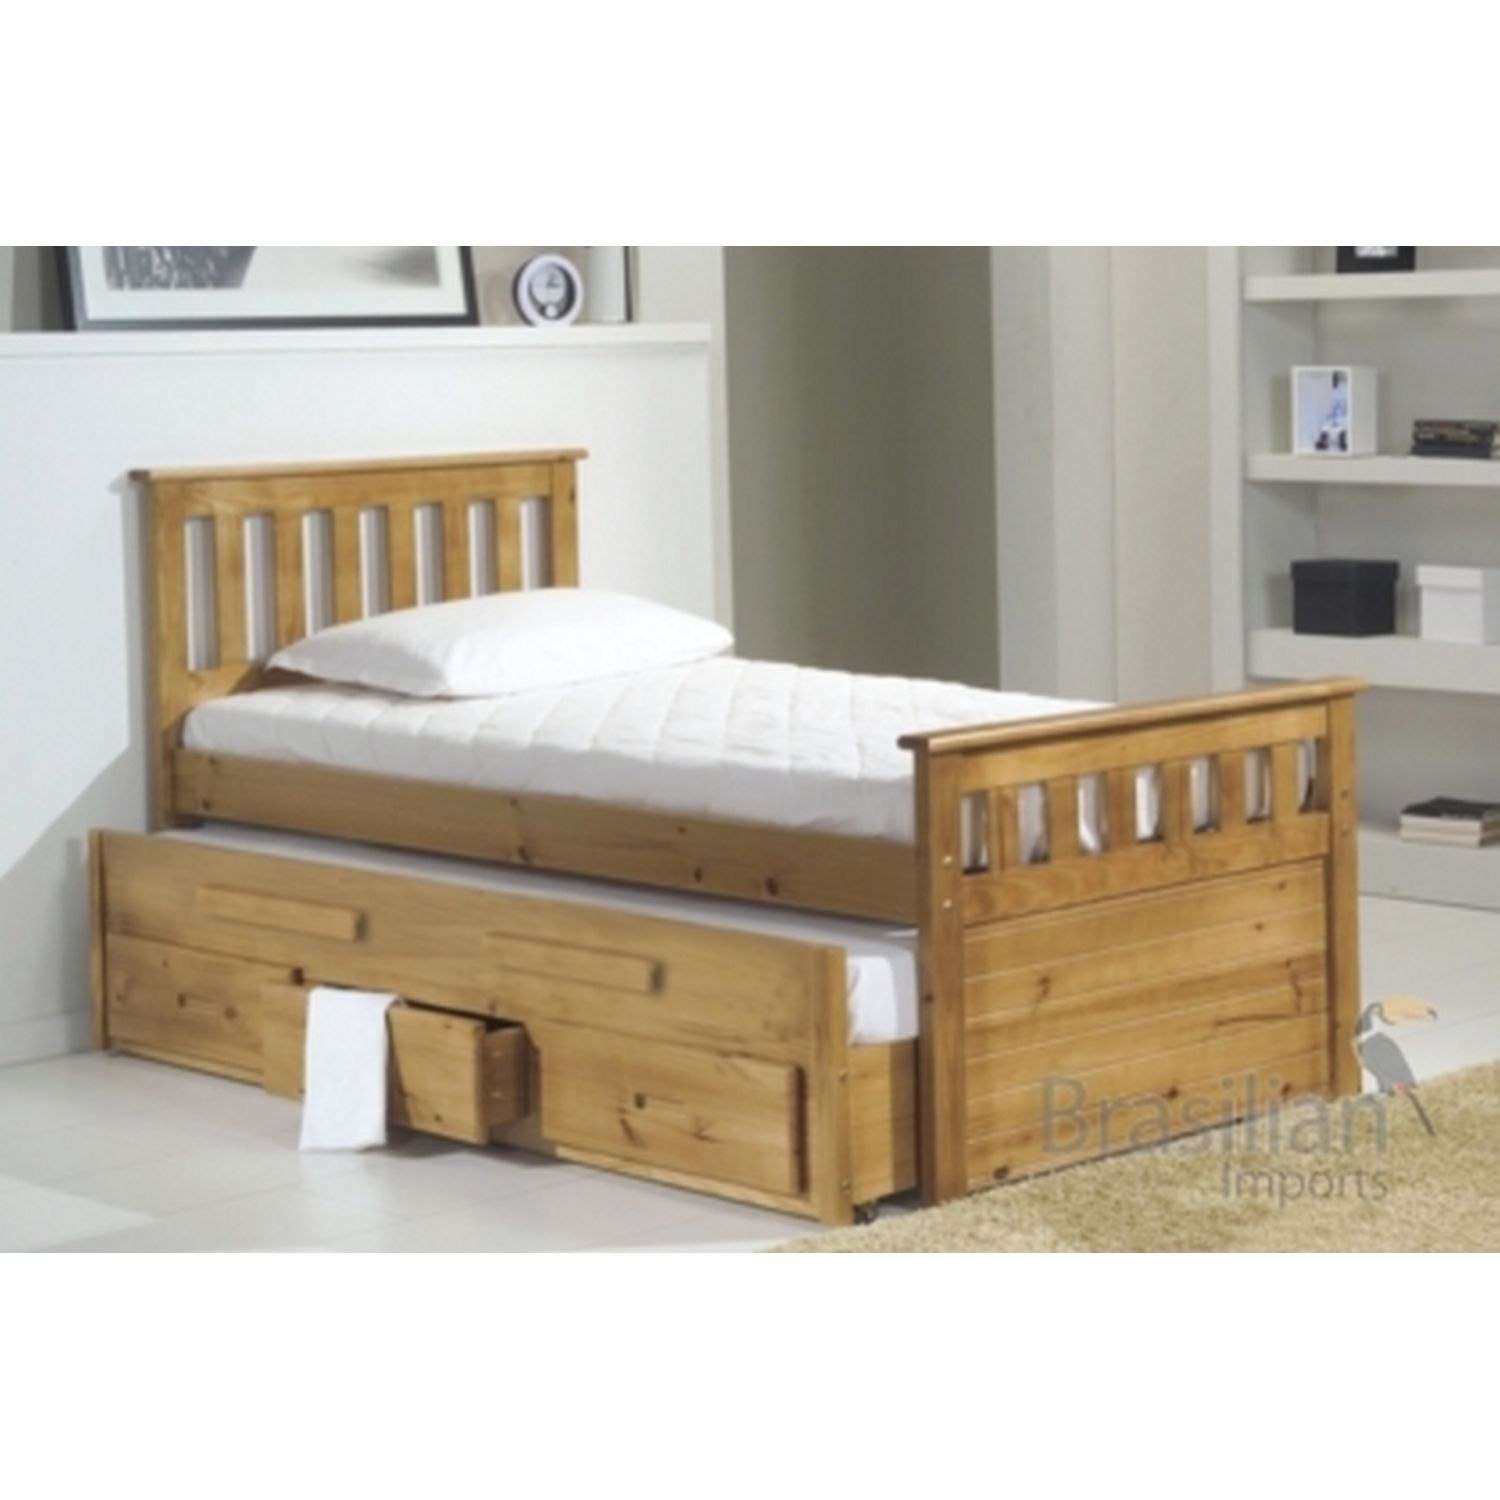 Bergamo Bed With Pull Out Bed And Drawers | Neelam | Pinterest | Drawers,  Dreams Beds And Wood Design